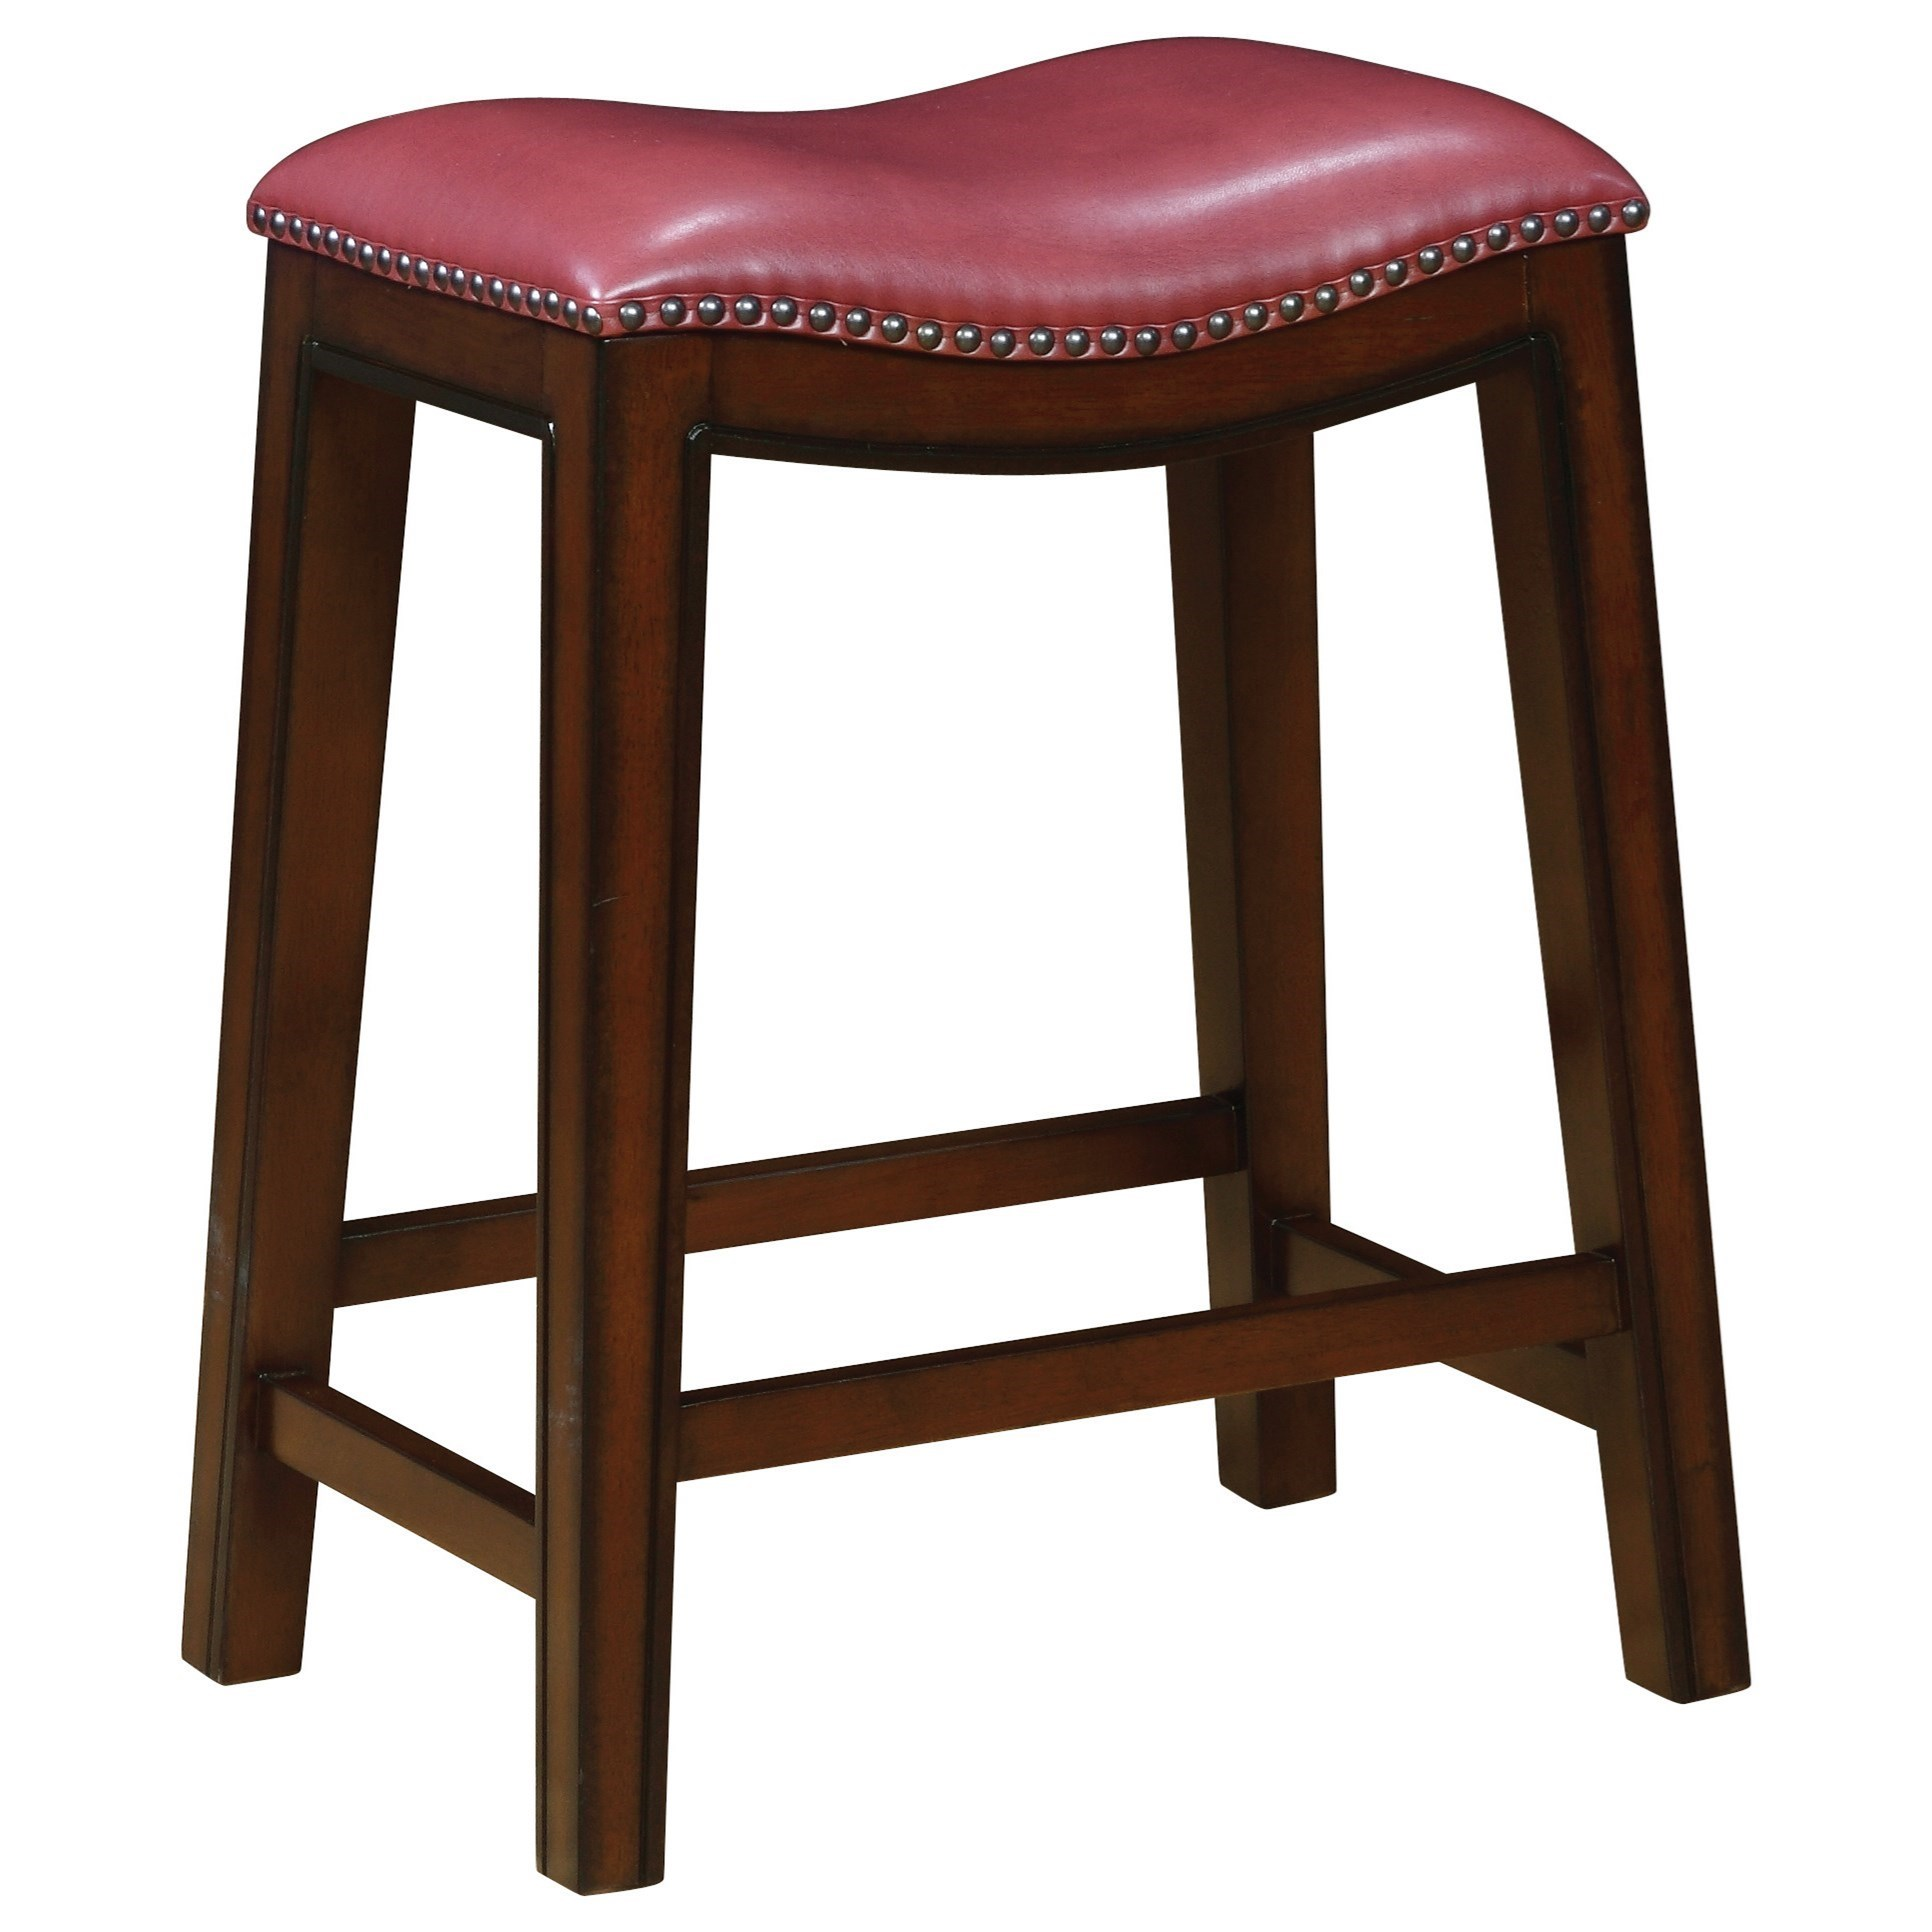 Coaster dining chairs and bar stools backless